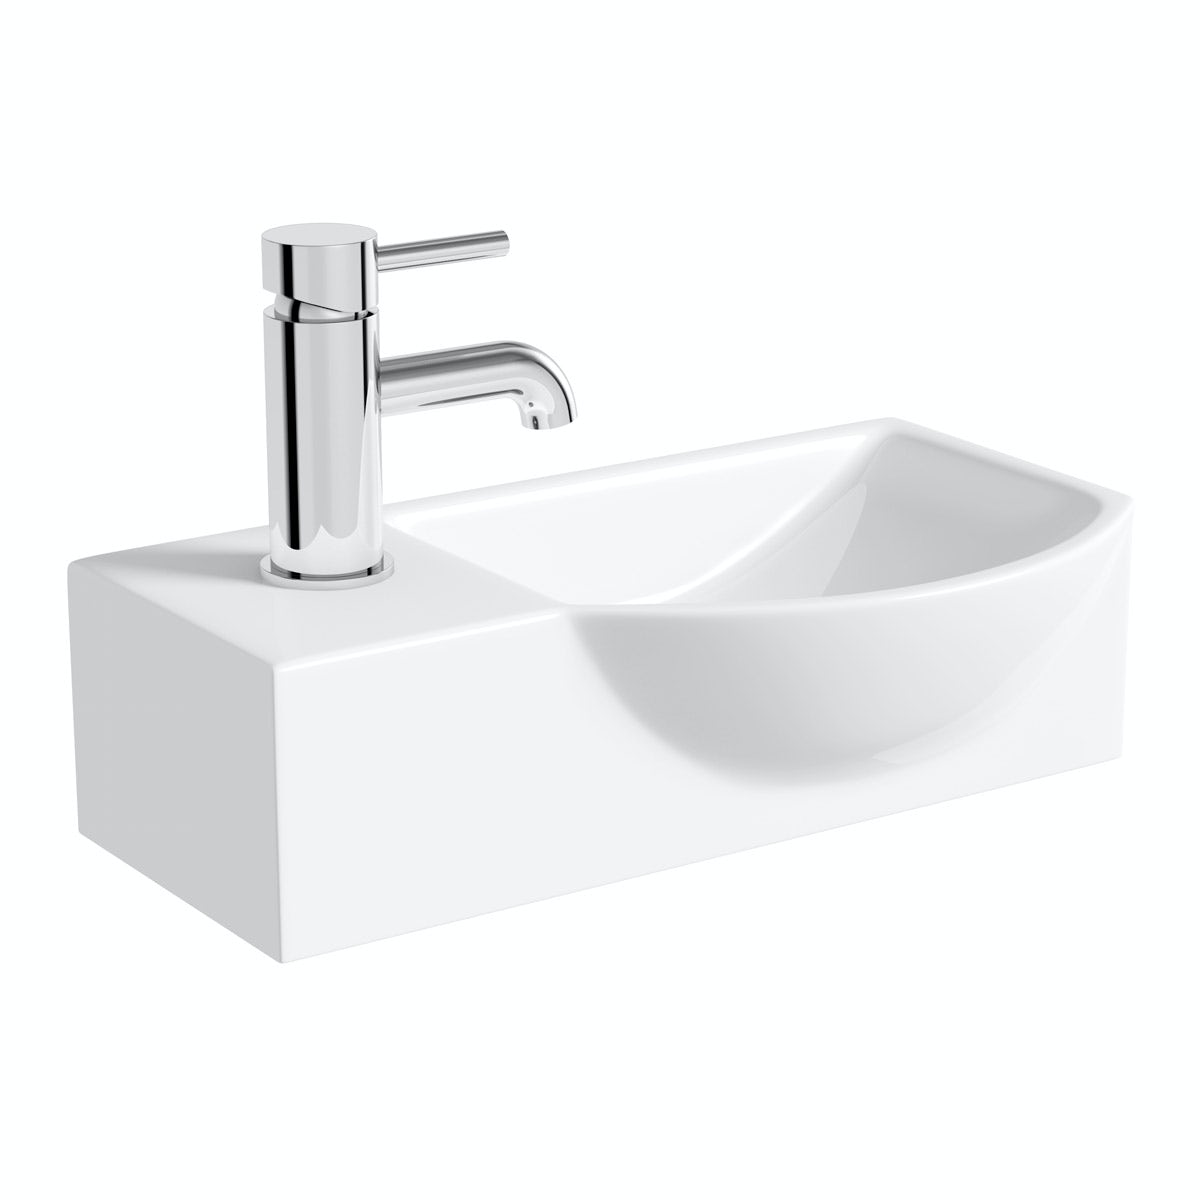 Orchard Lugano wall hung basin 505mm offer pack